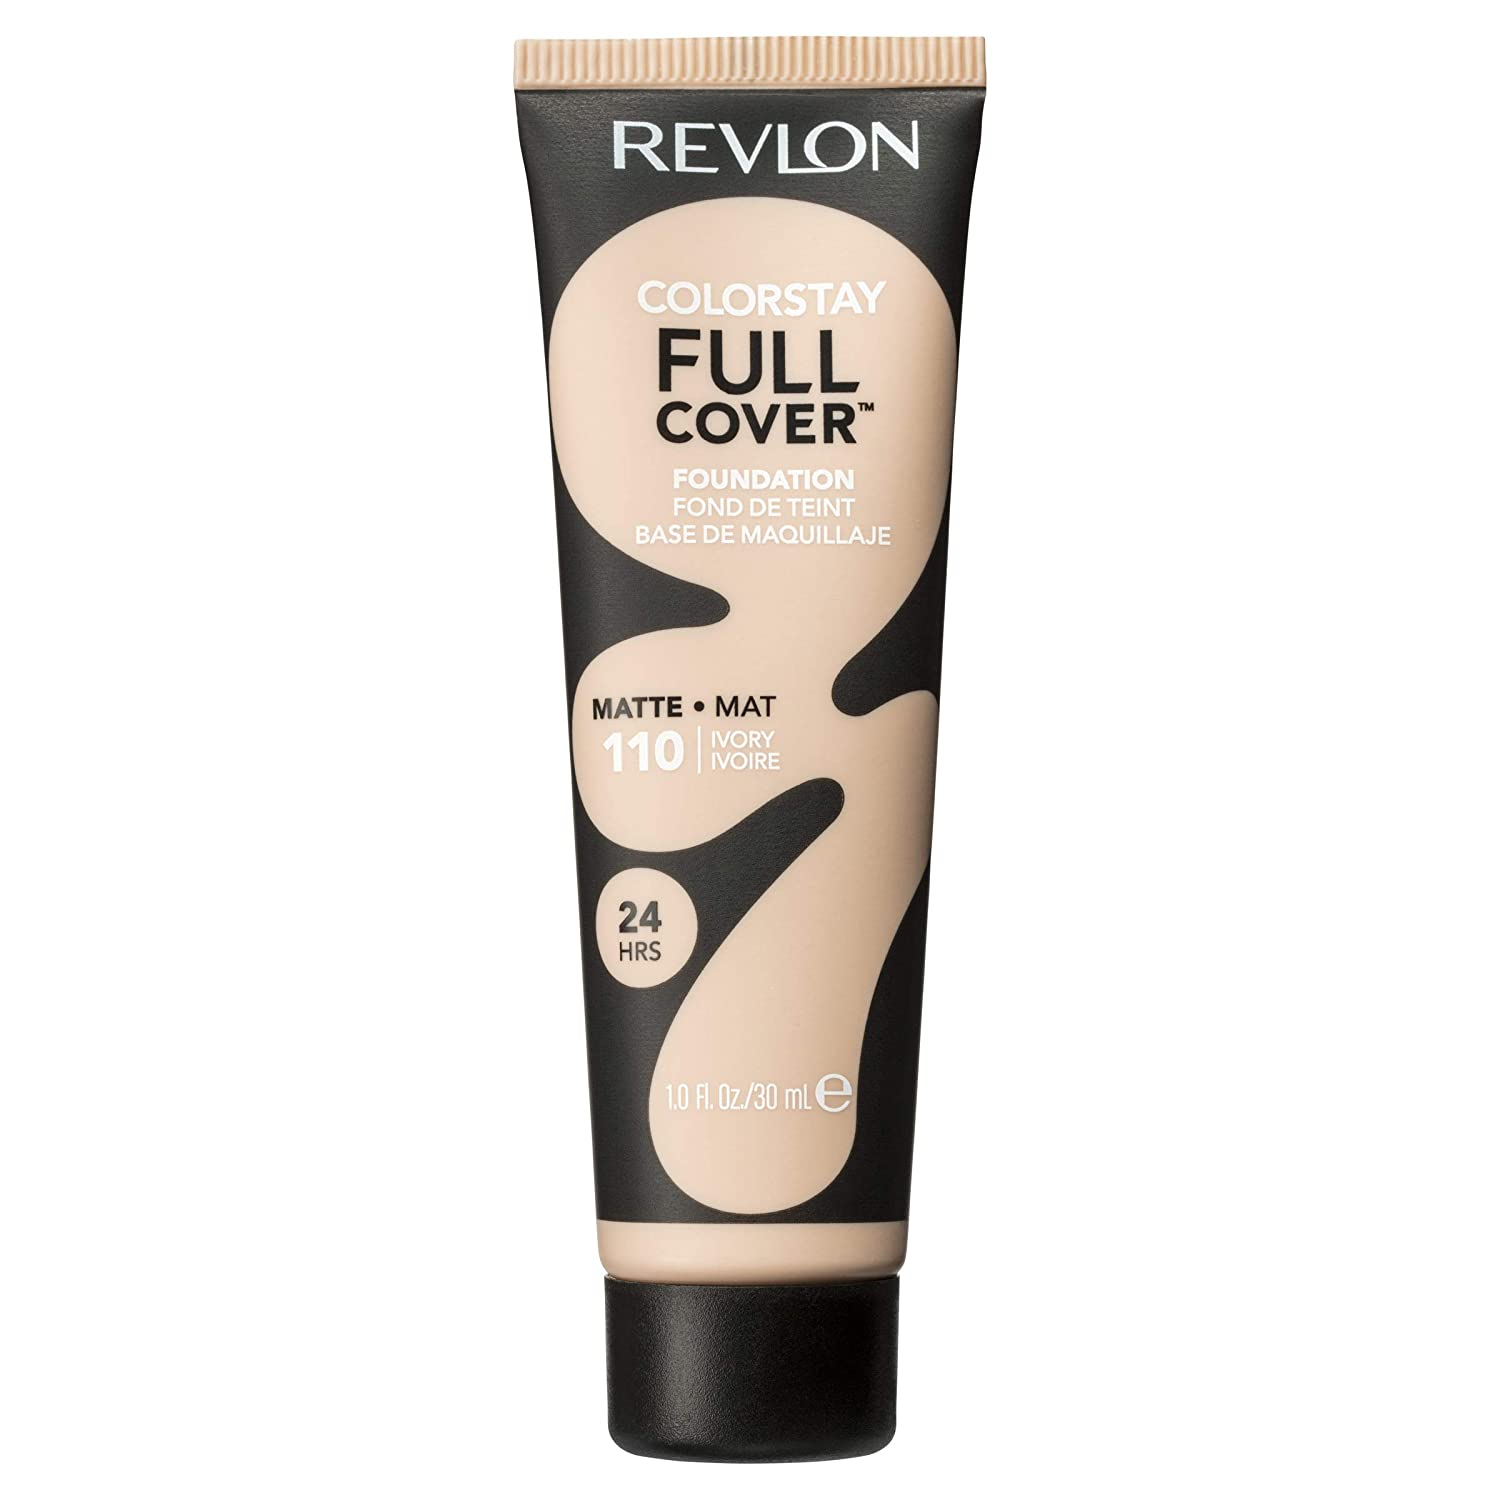 Revlon Color Stay Full Cover Foundation